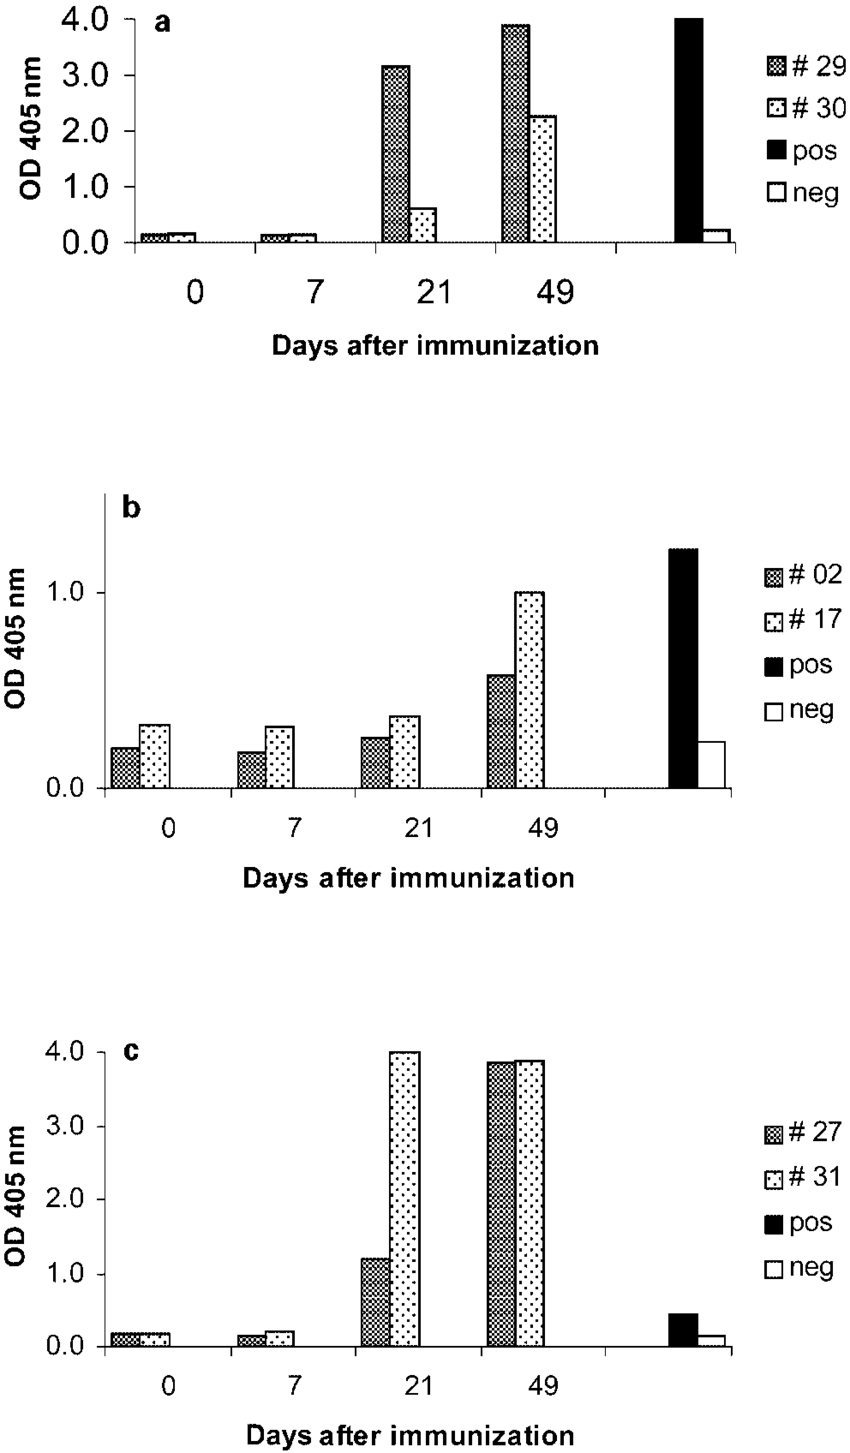 hight resolution of radioimmunoprecipitation with the serum of a caevinfected goat lane 1 a seronegative goat